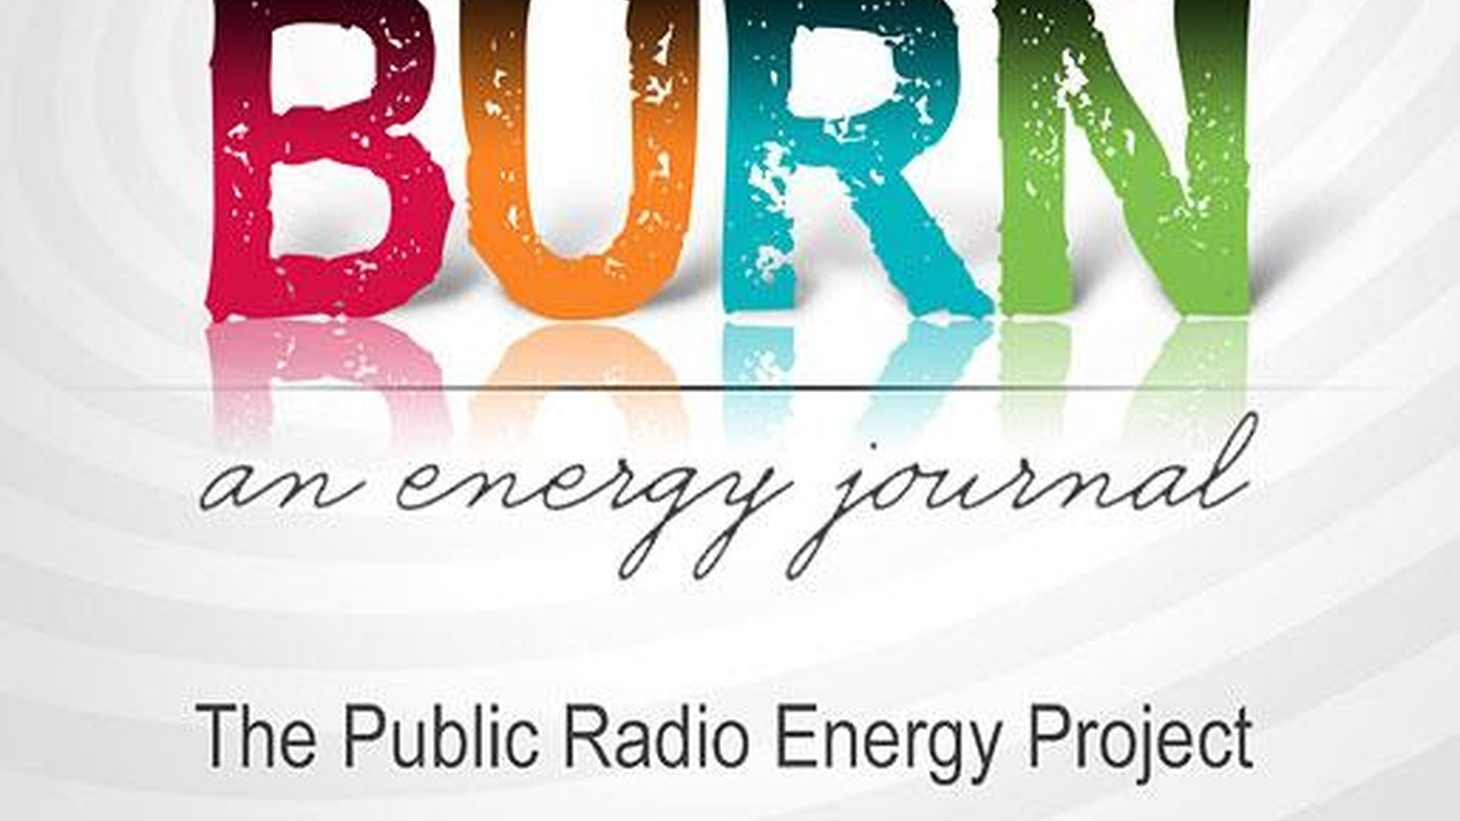 """In this edition of """"BURN: An Energy Journal"""" Alex Chadwick examines the state of America's electric power grid and the science needed to modernize it."""